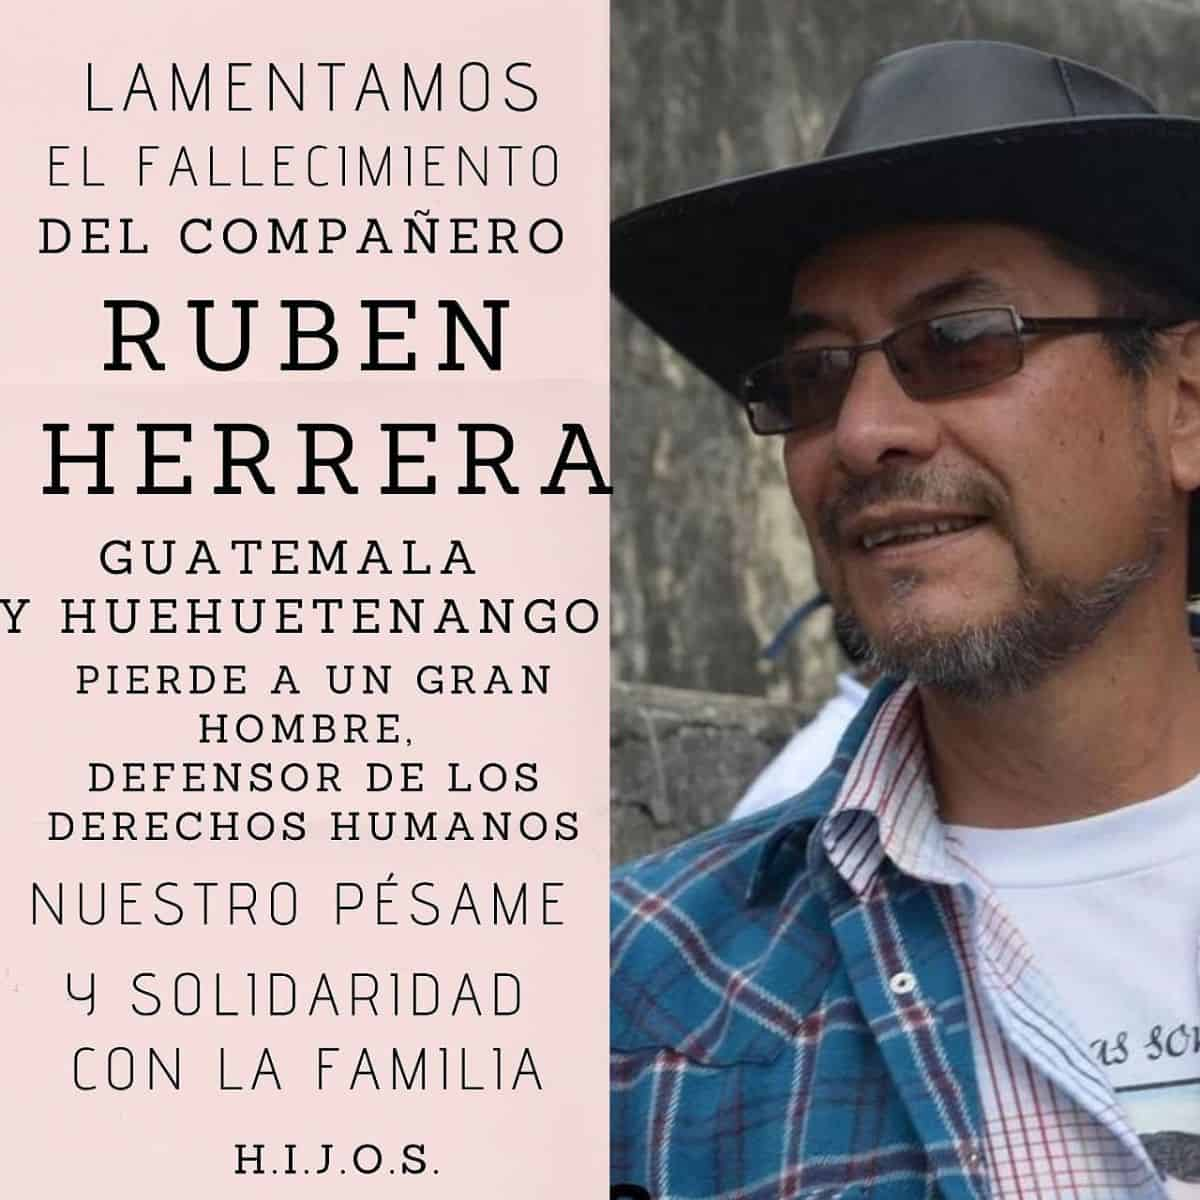 Flyer in memoriam of Ruben Herrera, shows Ruben in one side with hats and glasses